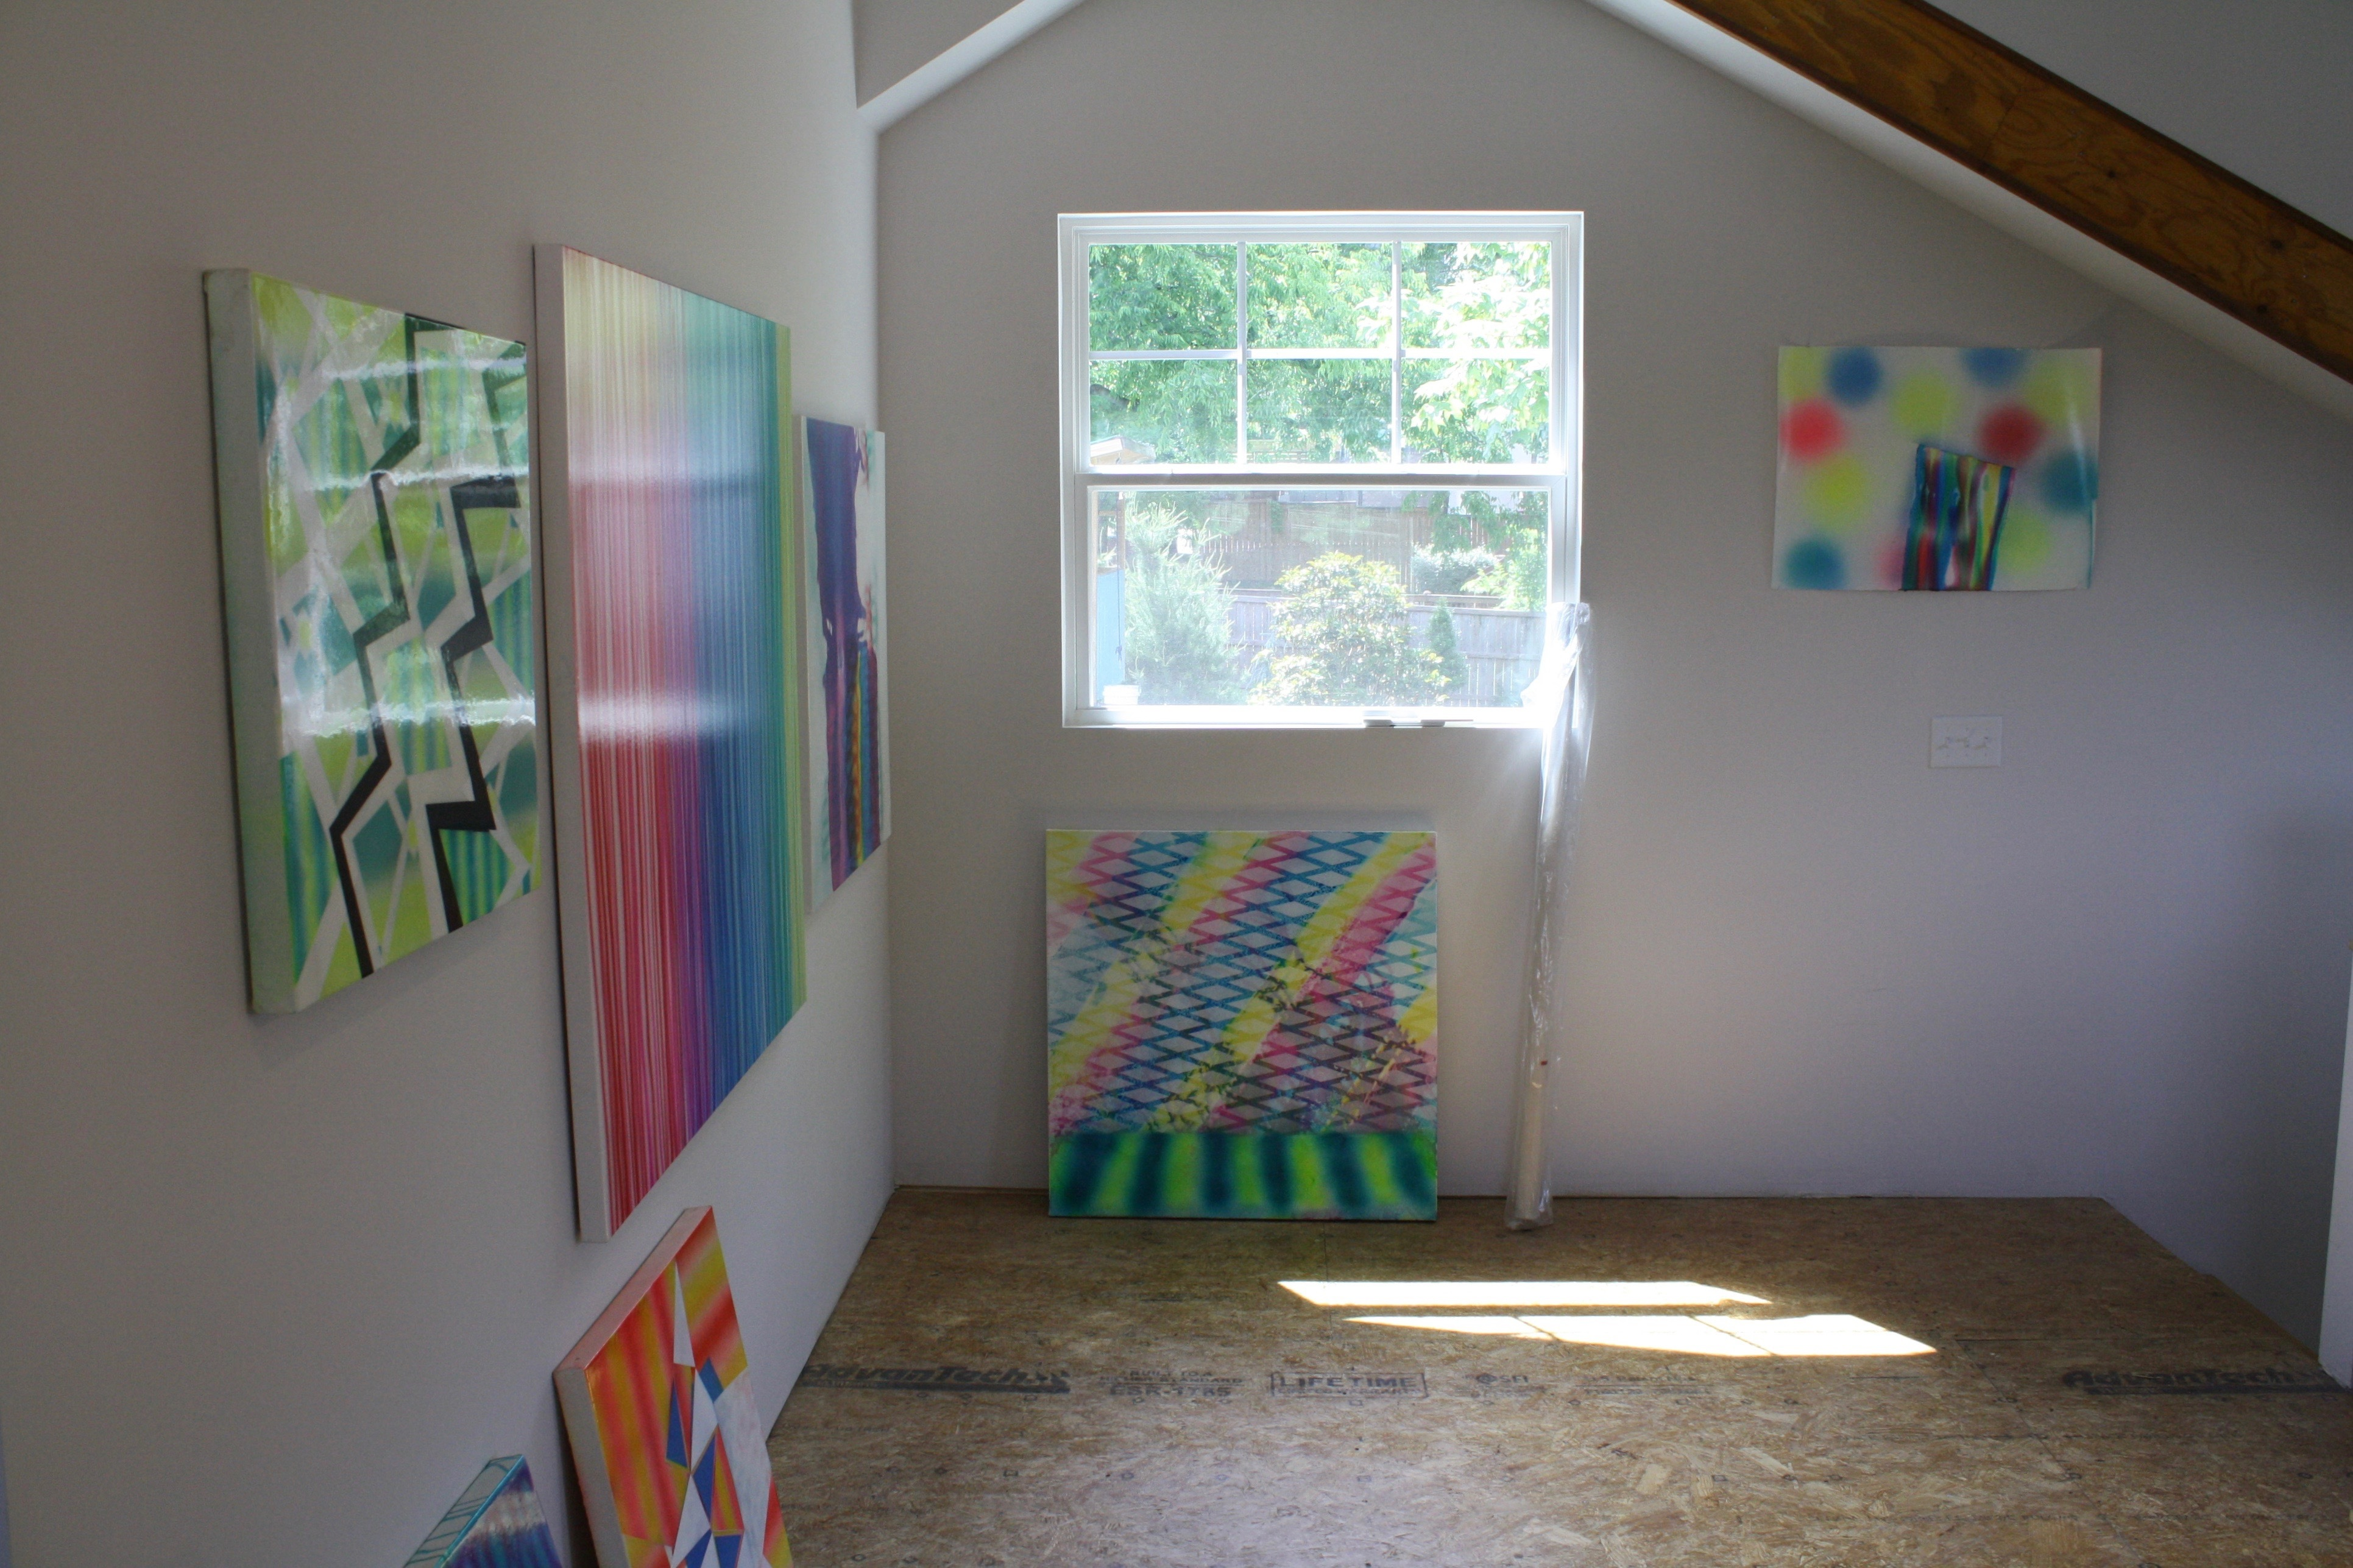 Alex Blau, Studio Visit, May 2017 (works pictured may be in-progress)